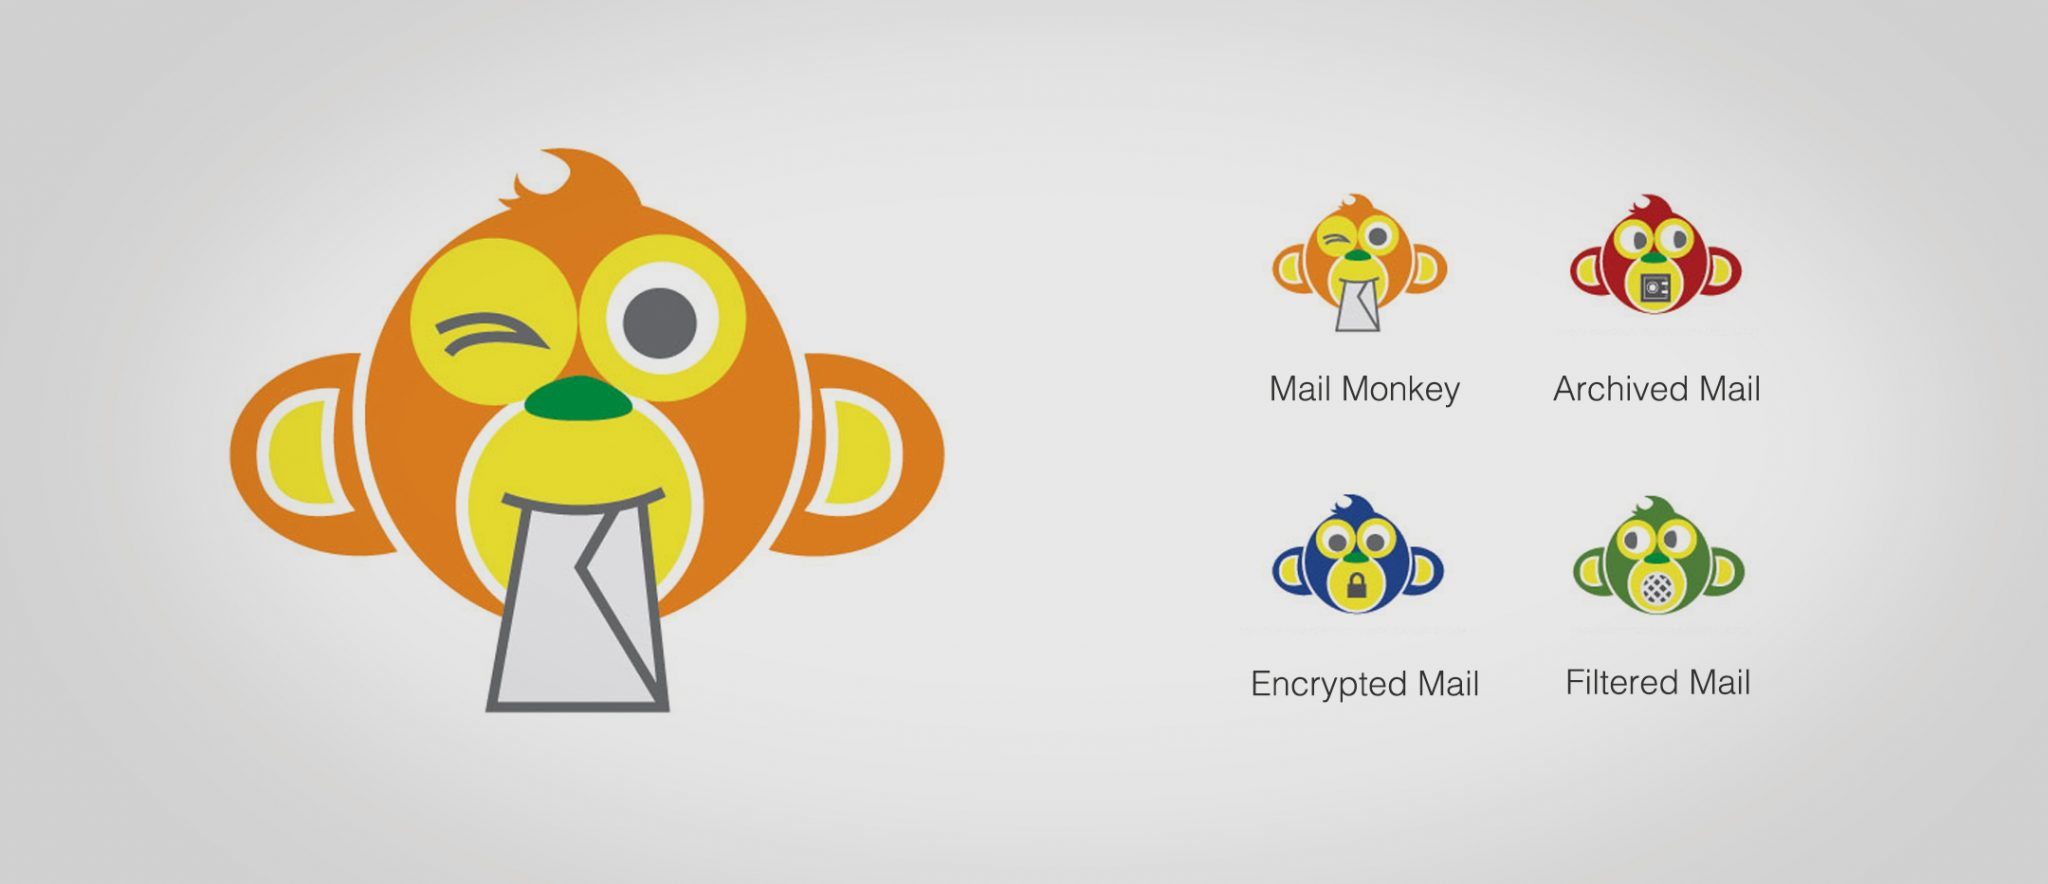 Mail Monkey Logo Design